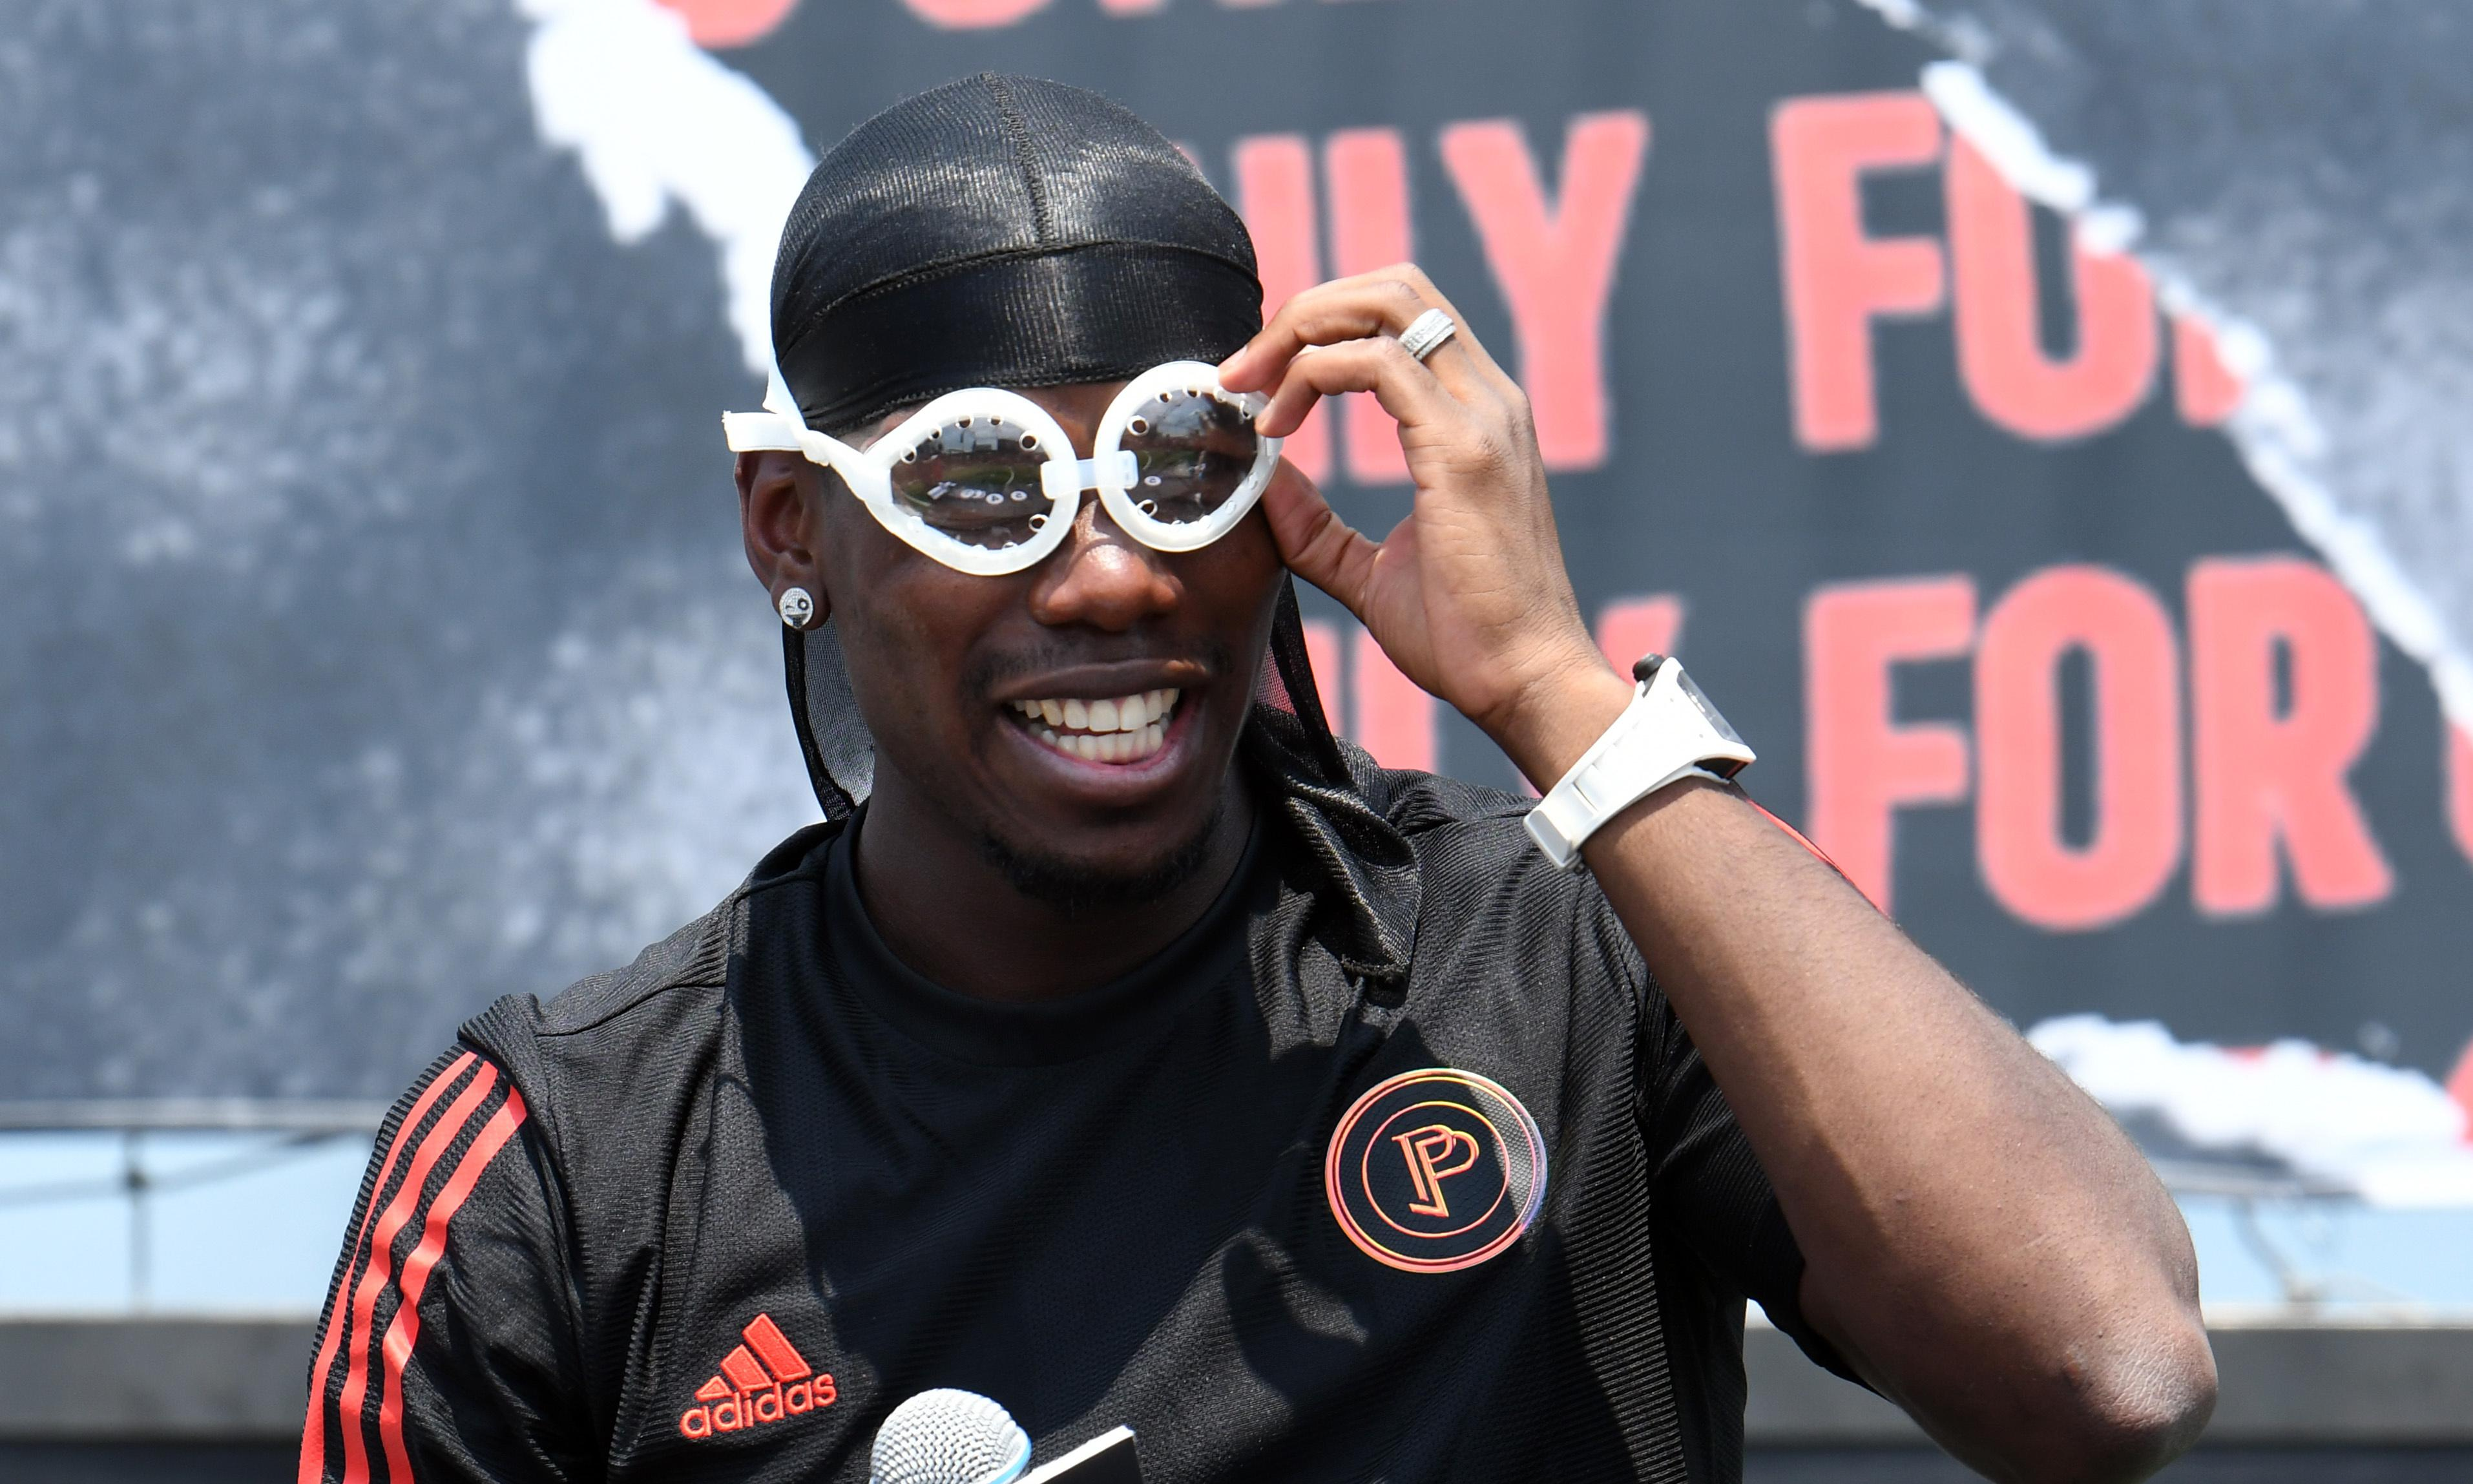 Paul Pogba: 'It could be a good time to have a new challenge'